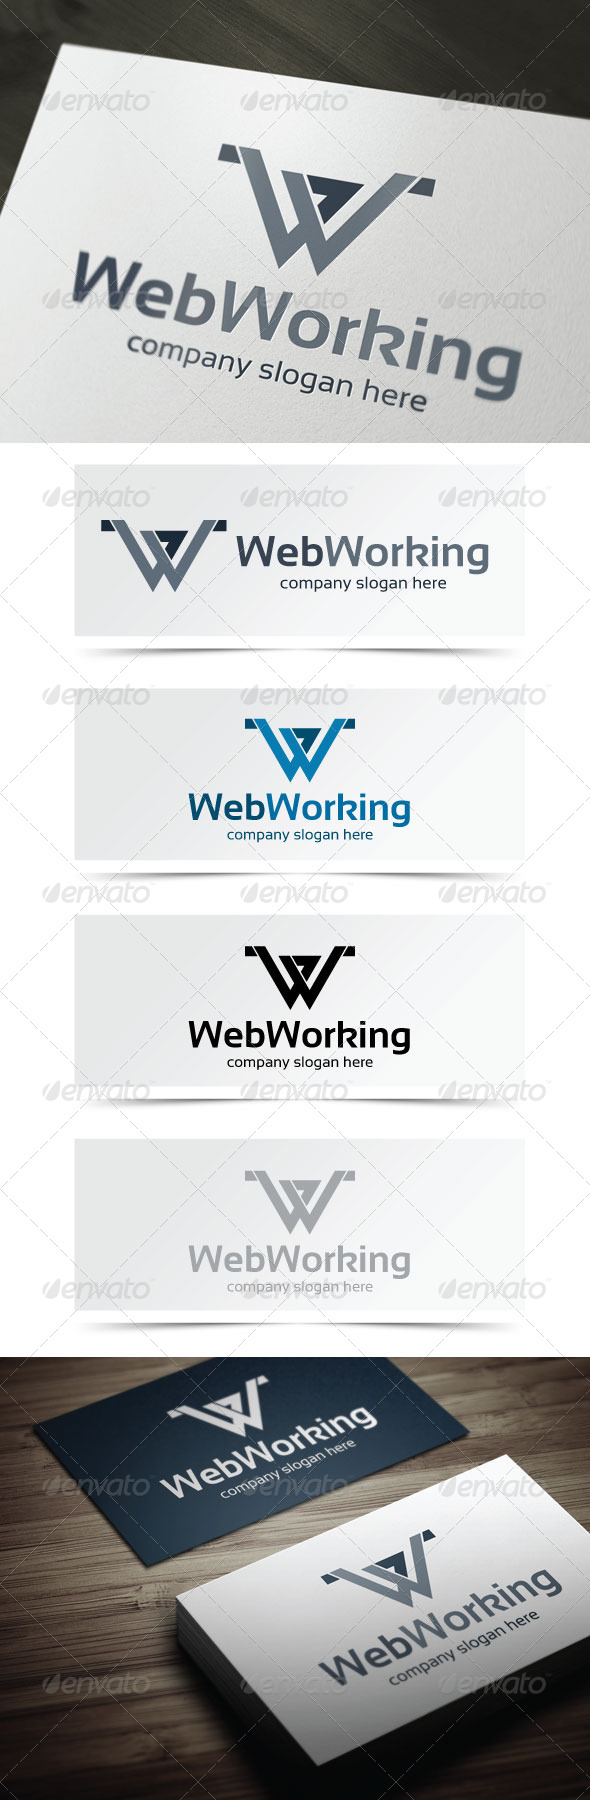 Web Working - Letters Logo Templates